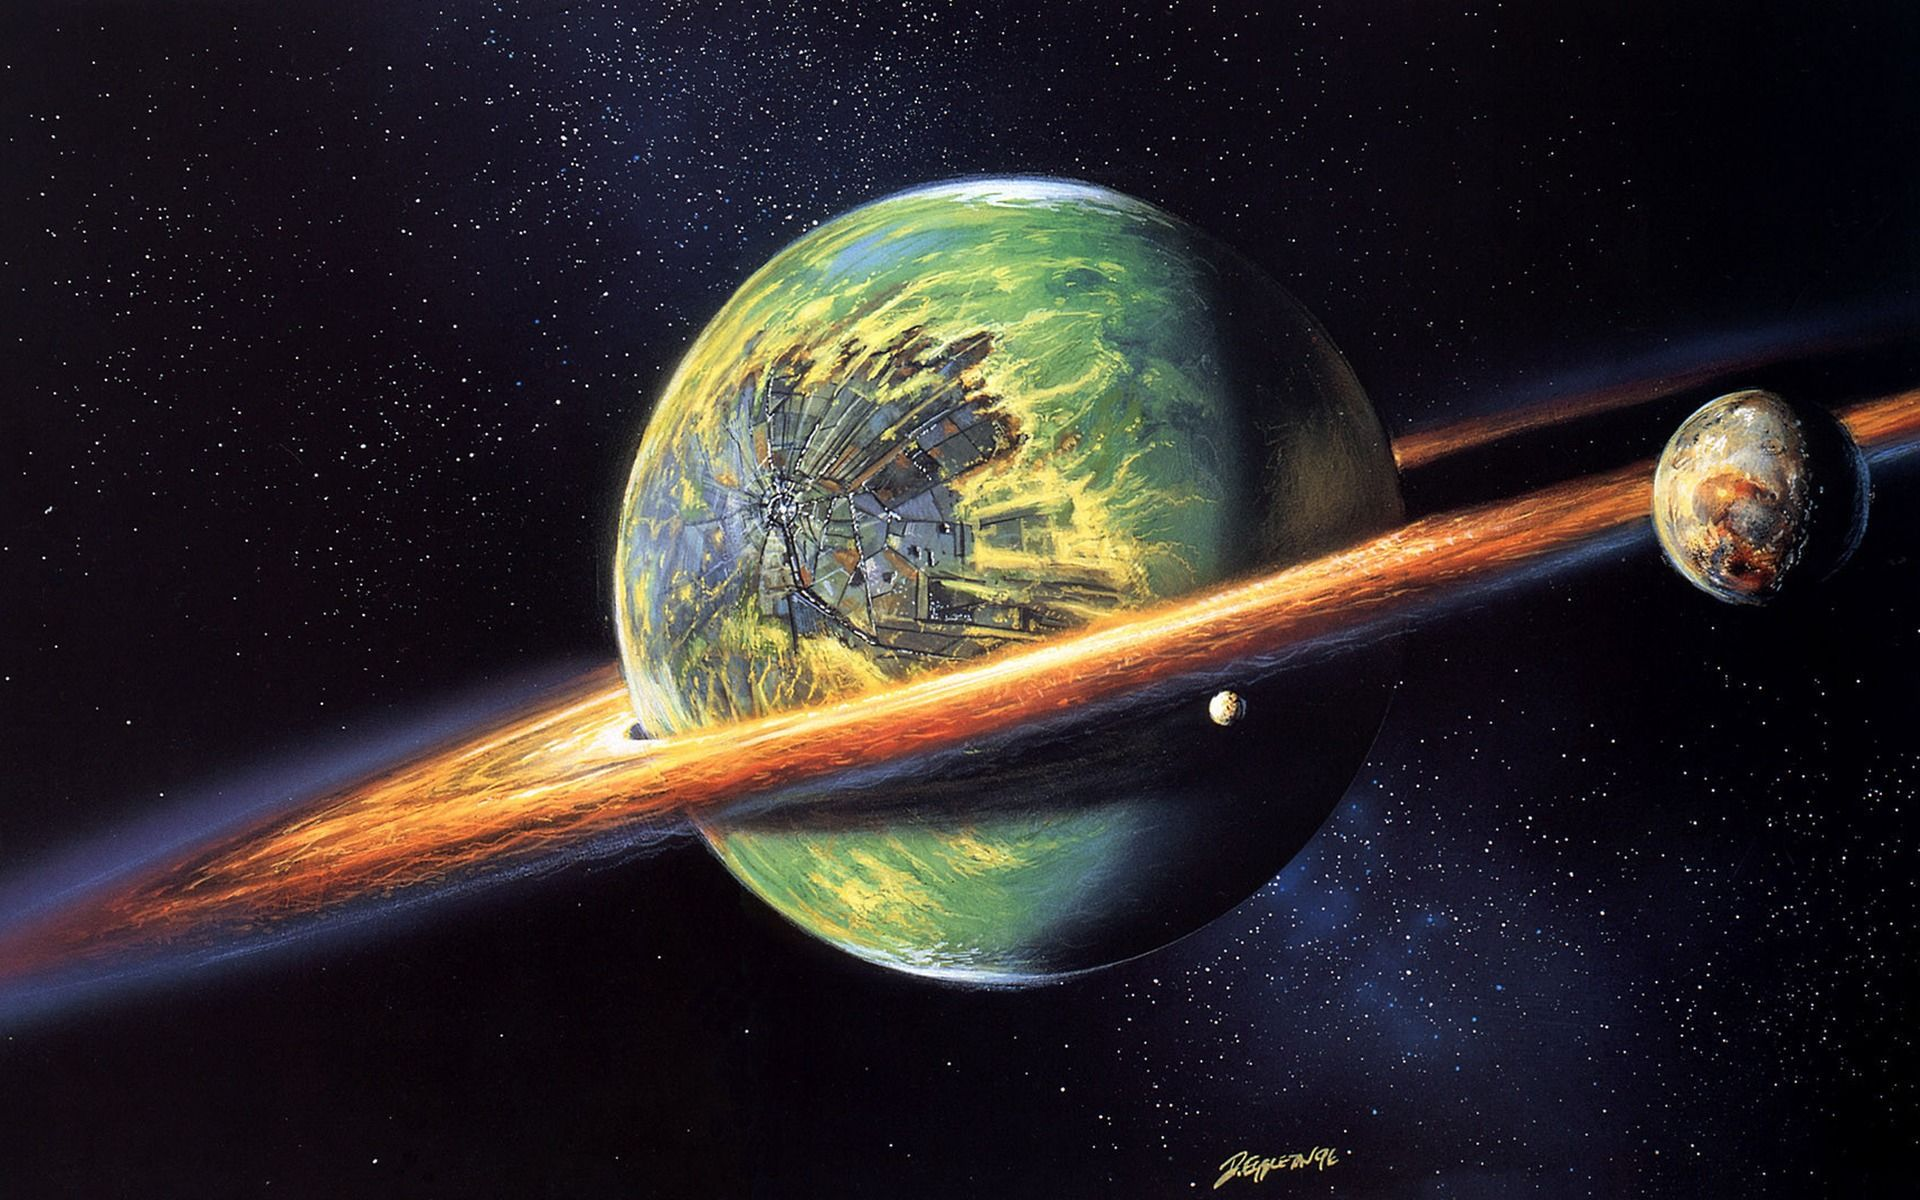 Space Cool Planet Picture Retro Wallpaper Planets Wallpaper